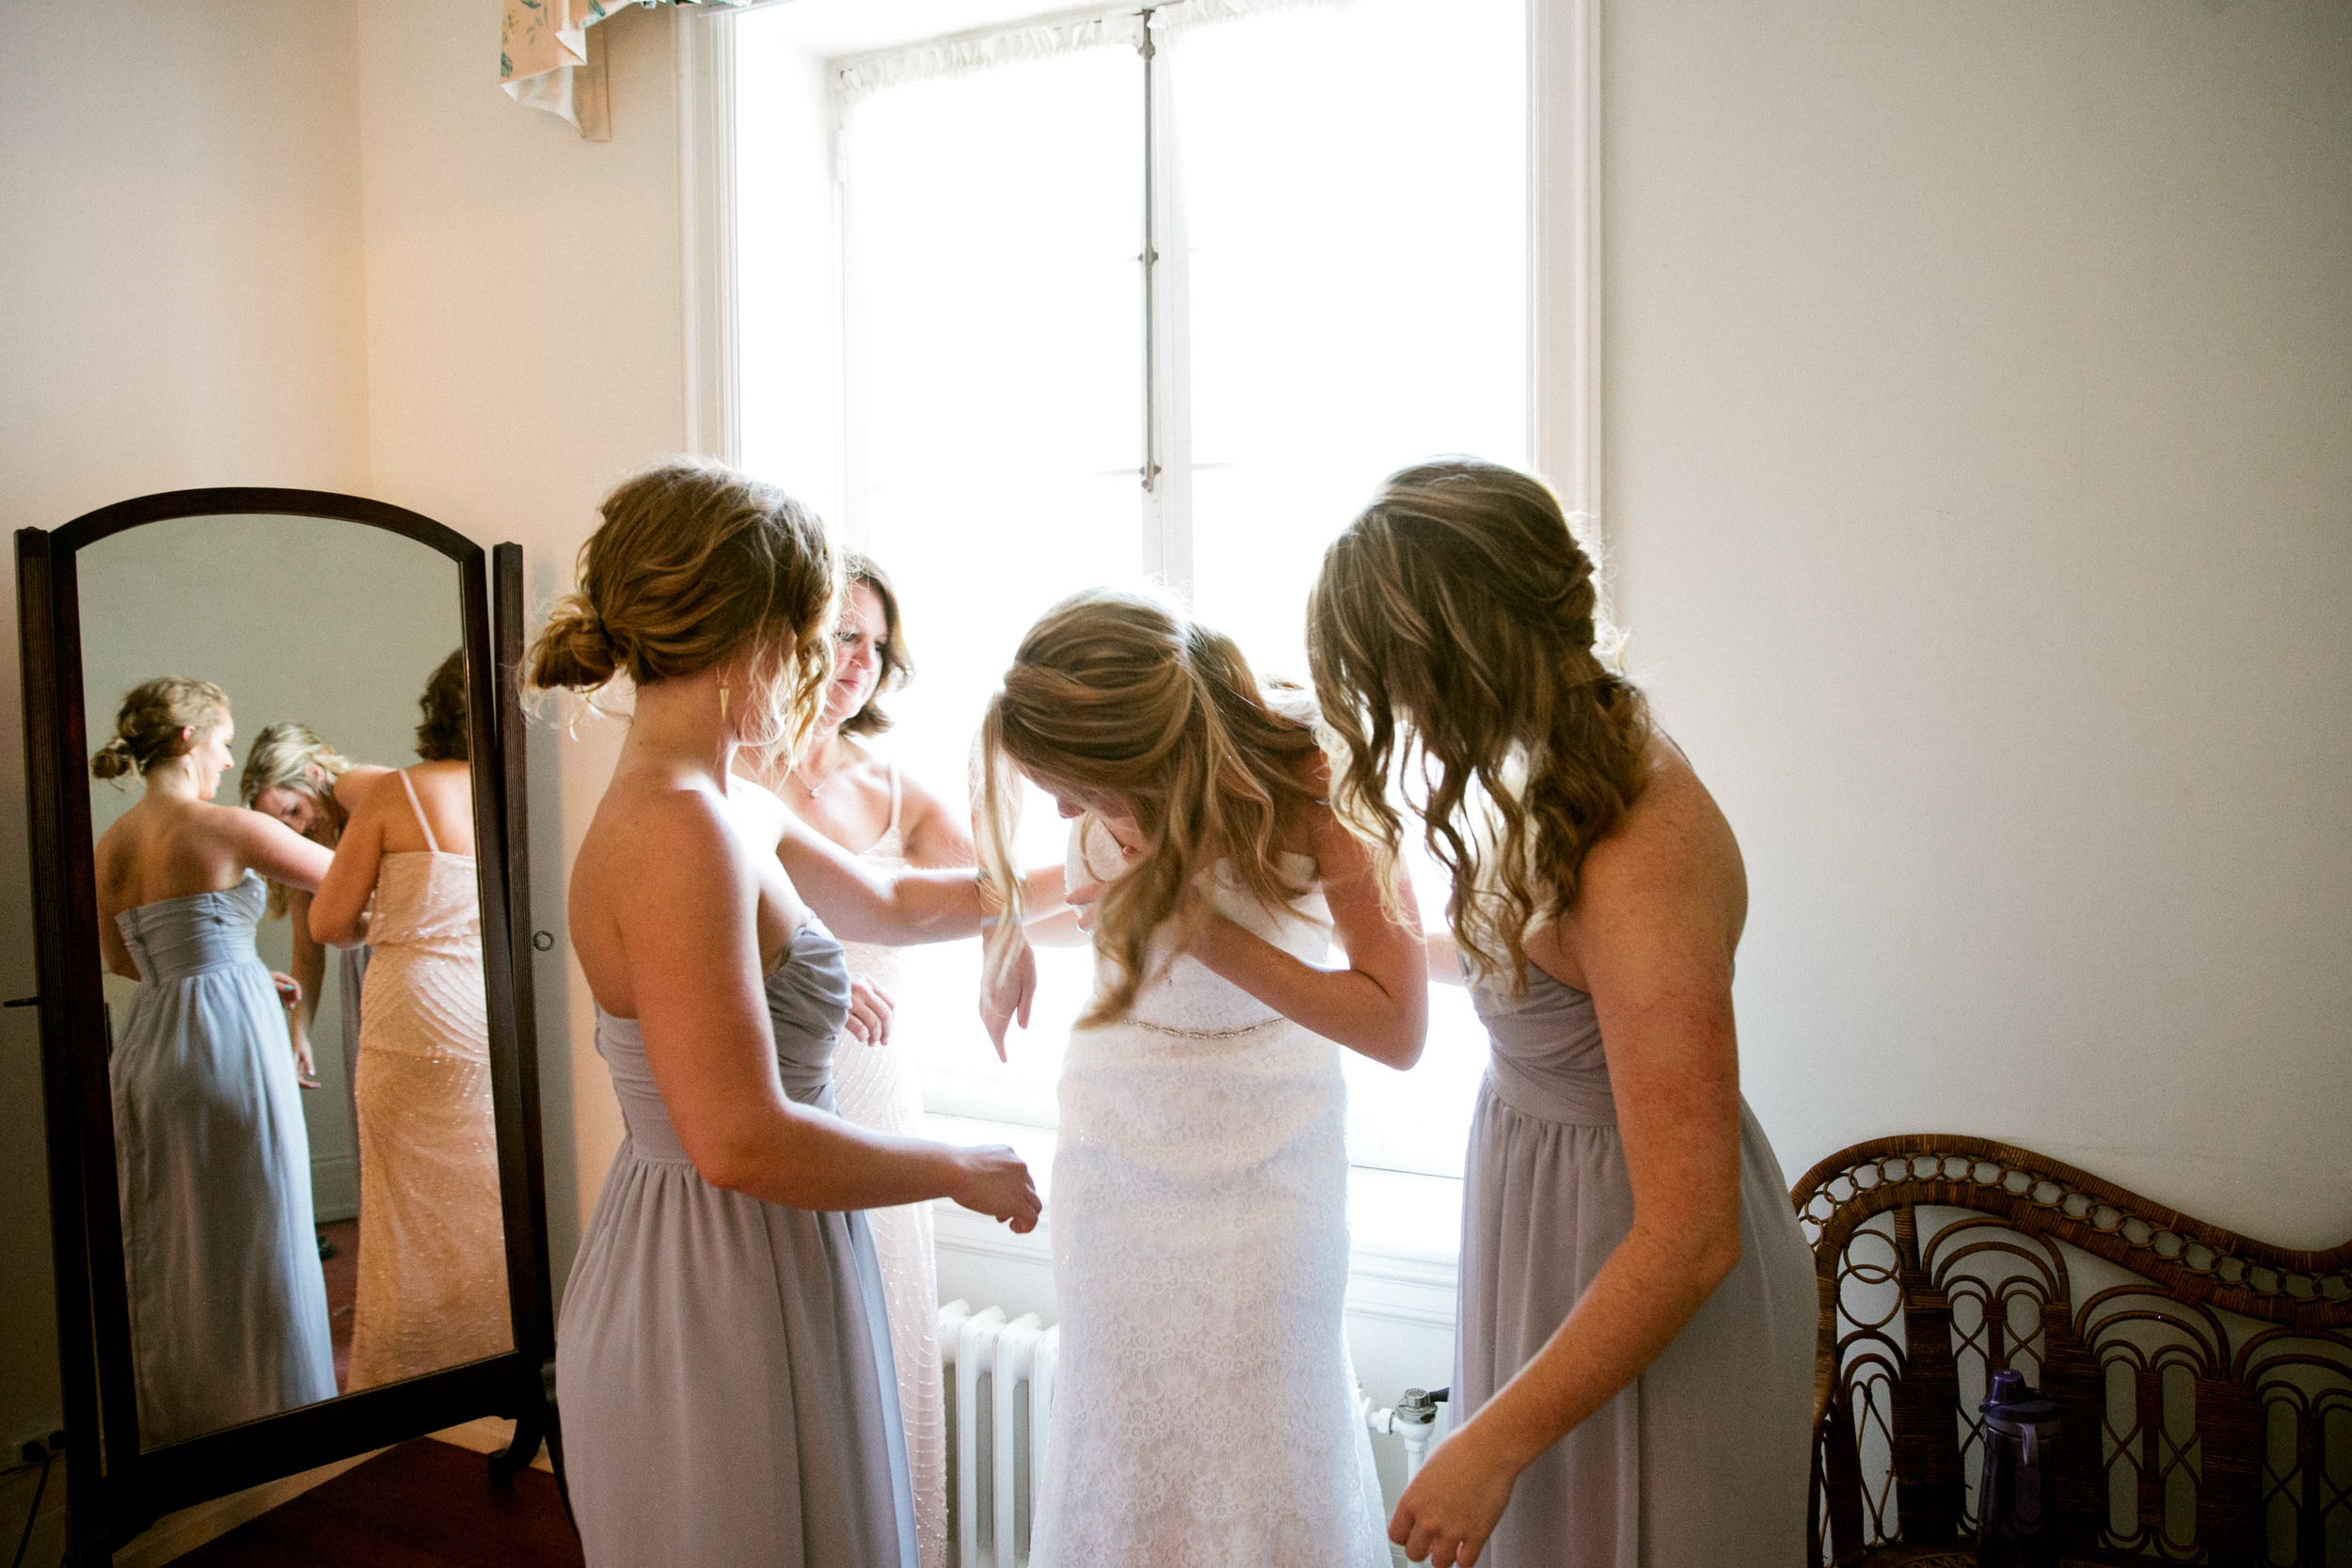 caleb_anna_wedding-96.JPG